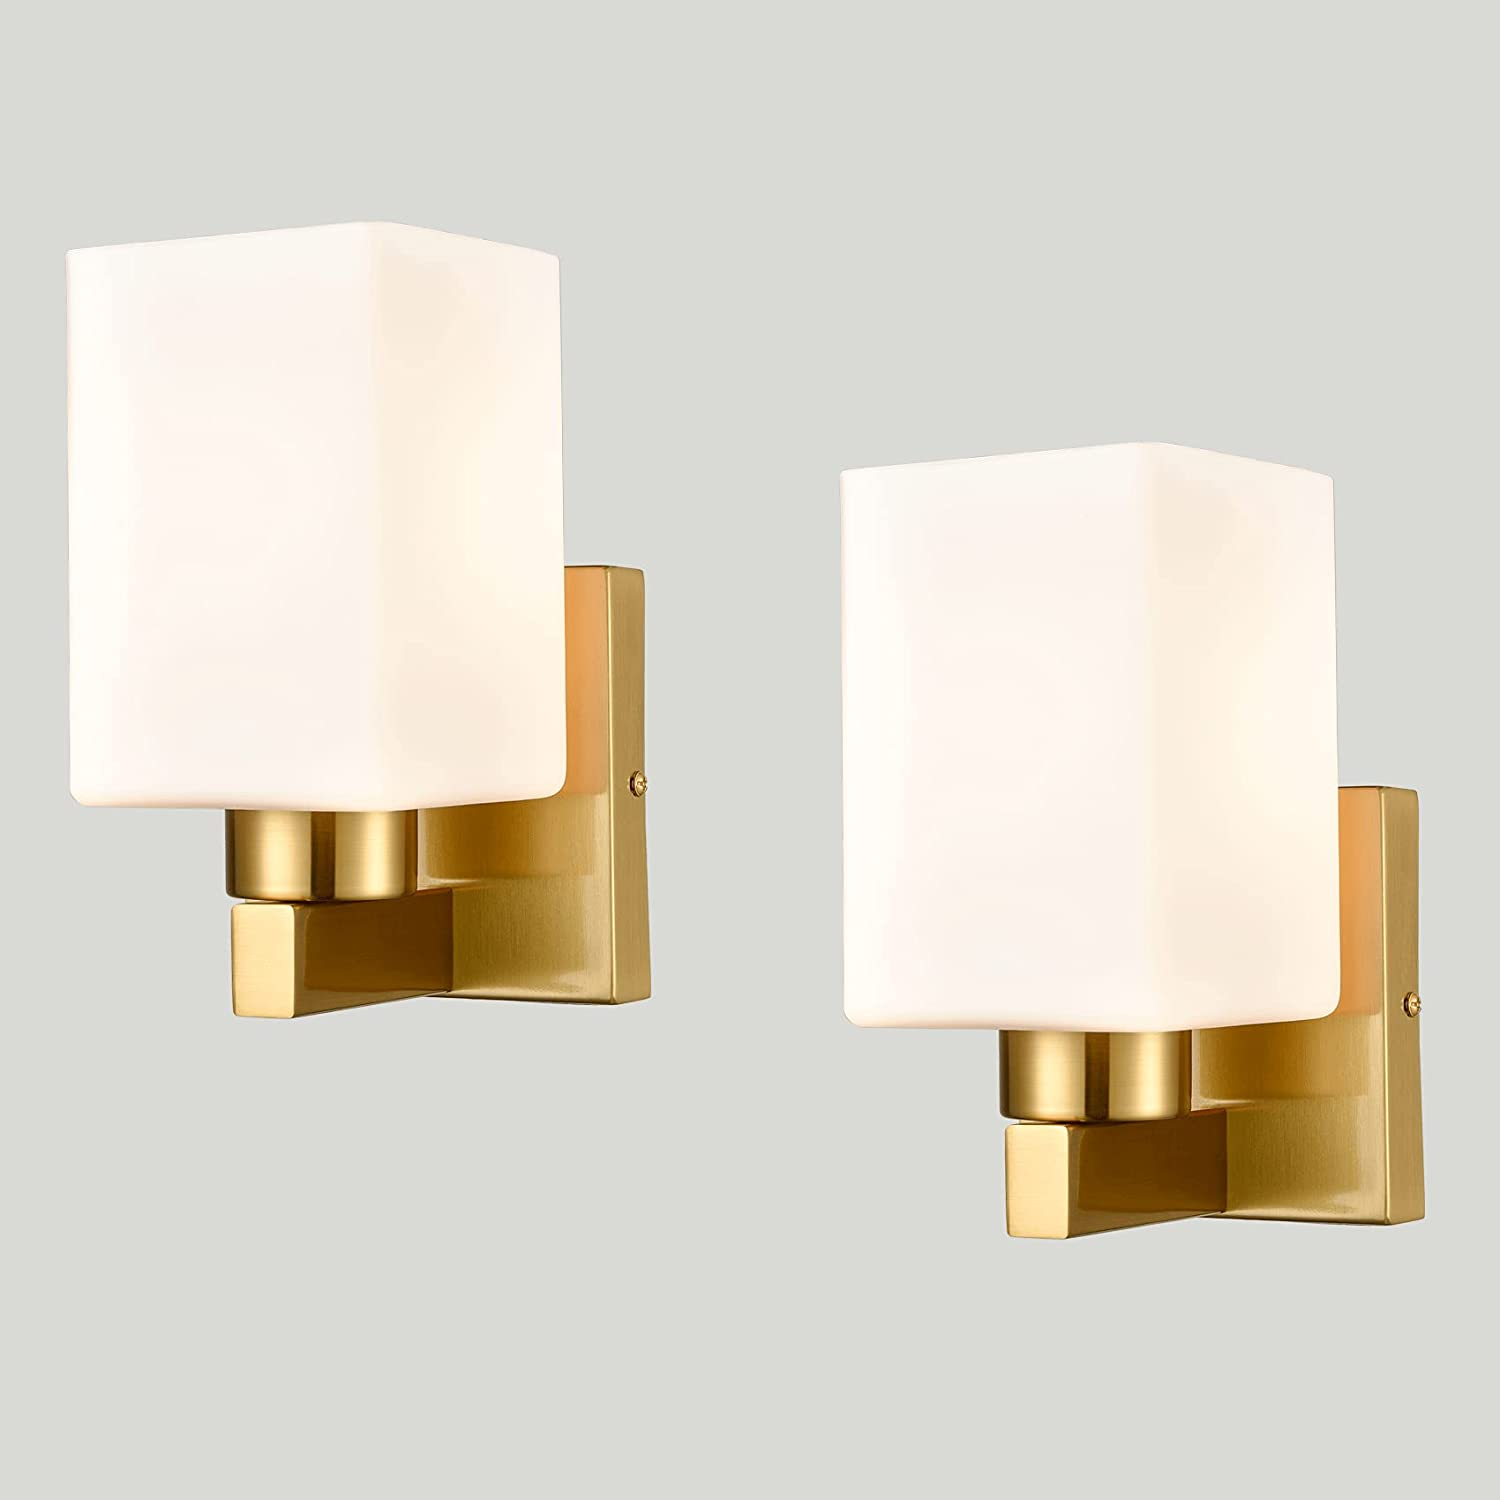 DEYNITE 2-Pack Limited time Lowest price challenge cheap sale Brass Wall Sconce Modern Fixtures Light Bathroom